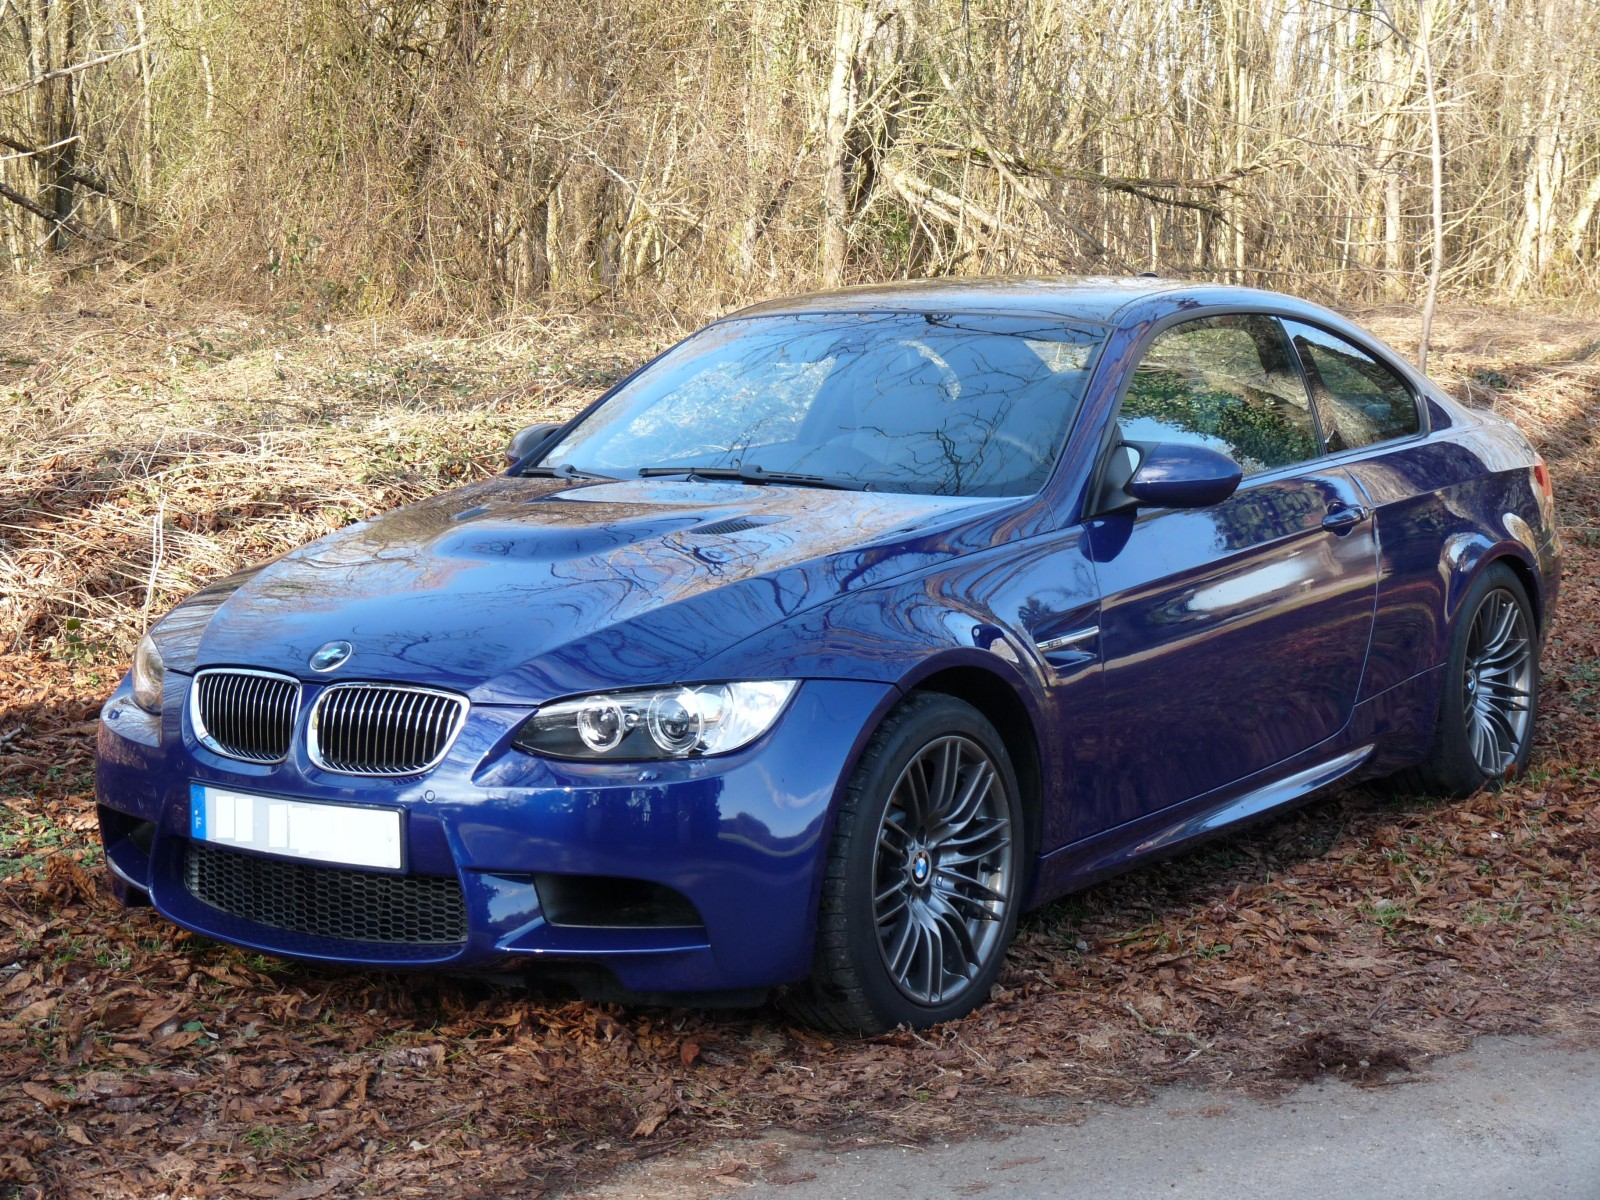 [Test Drive Rpt] BMW M3 E92